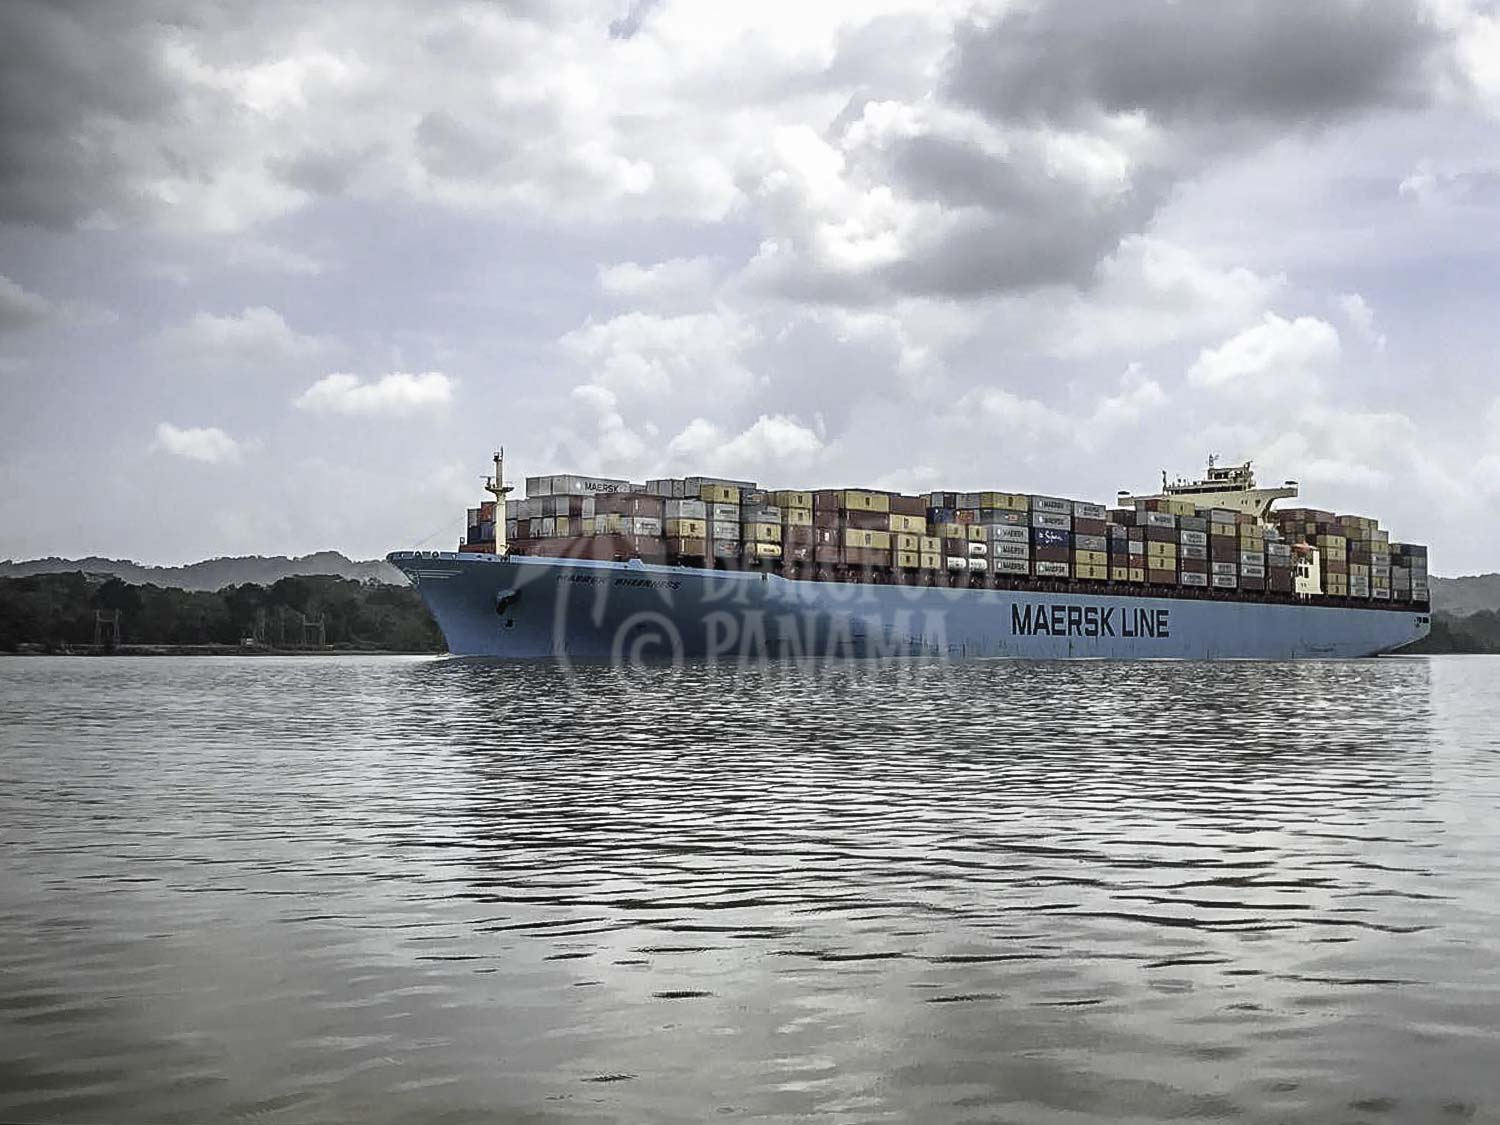 ship-seen-on-panama-canal-tour